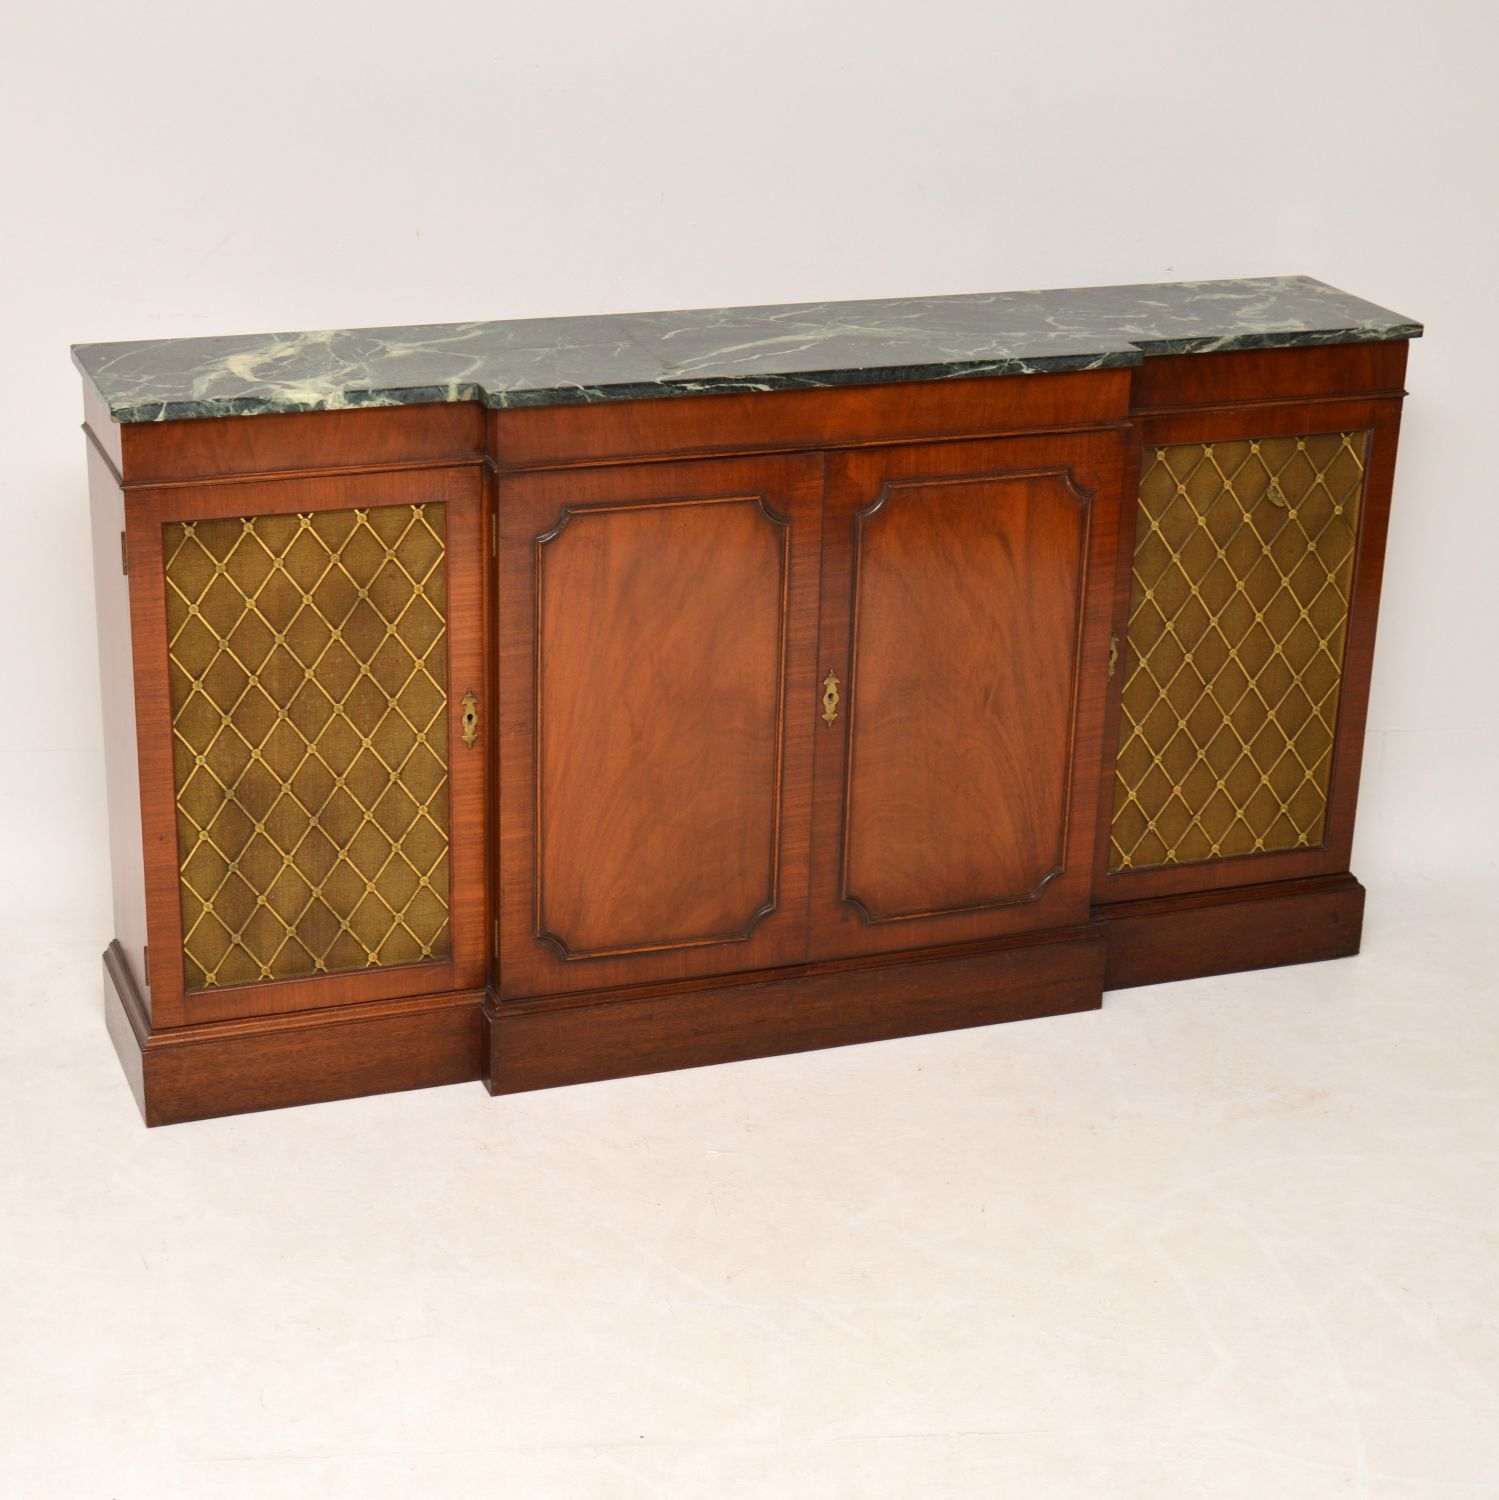 Antique Regency Style Mahogany Sideboard